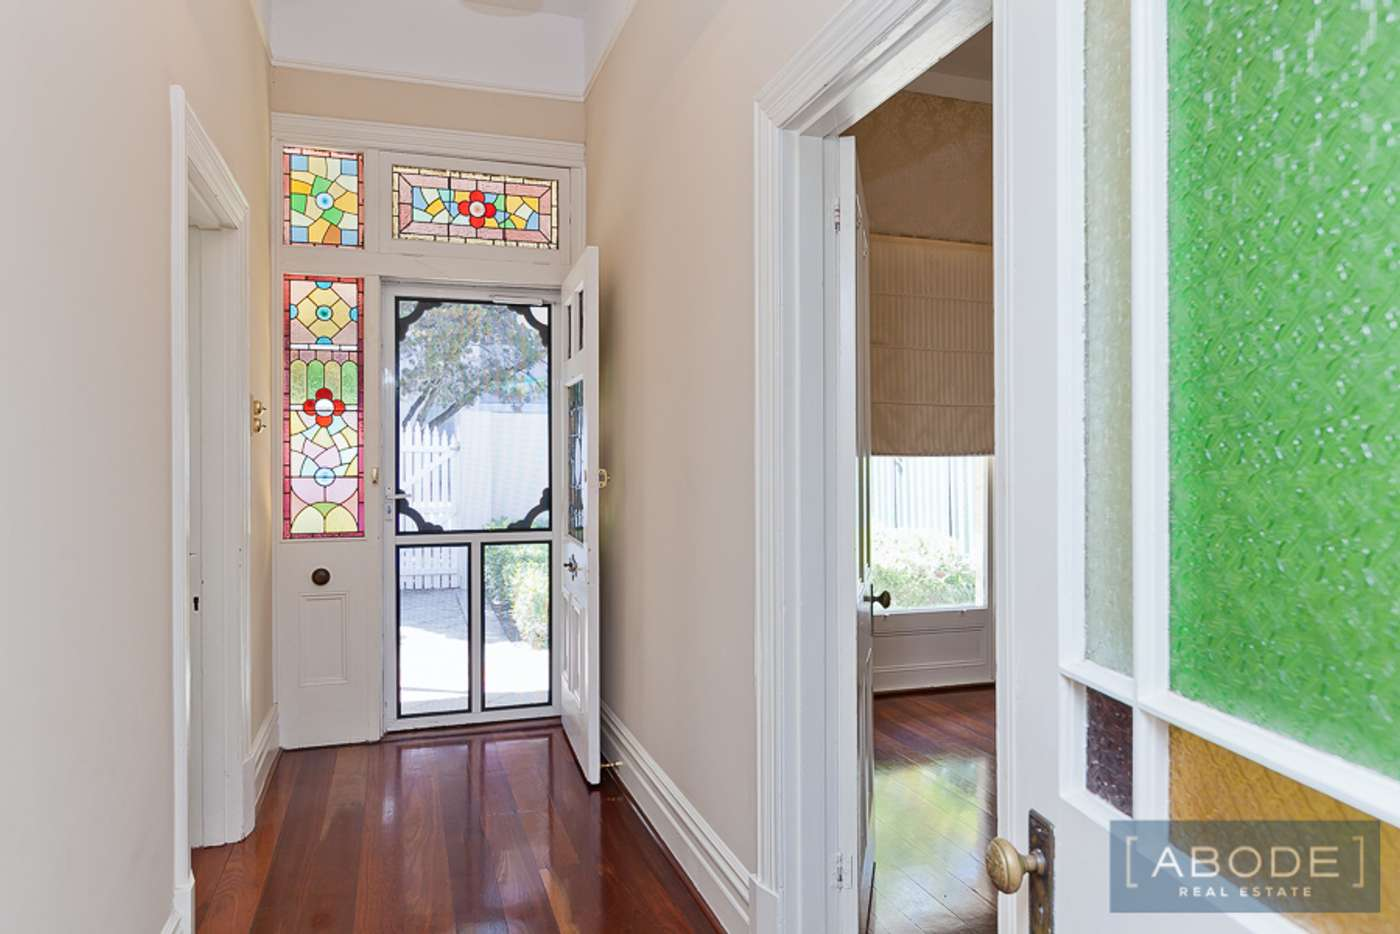 Sixth view of Homely house listing, 243 Roberts Road, Subiaco WA 6008